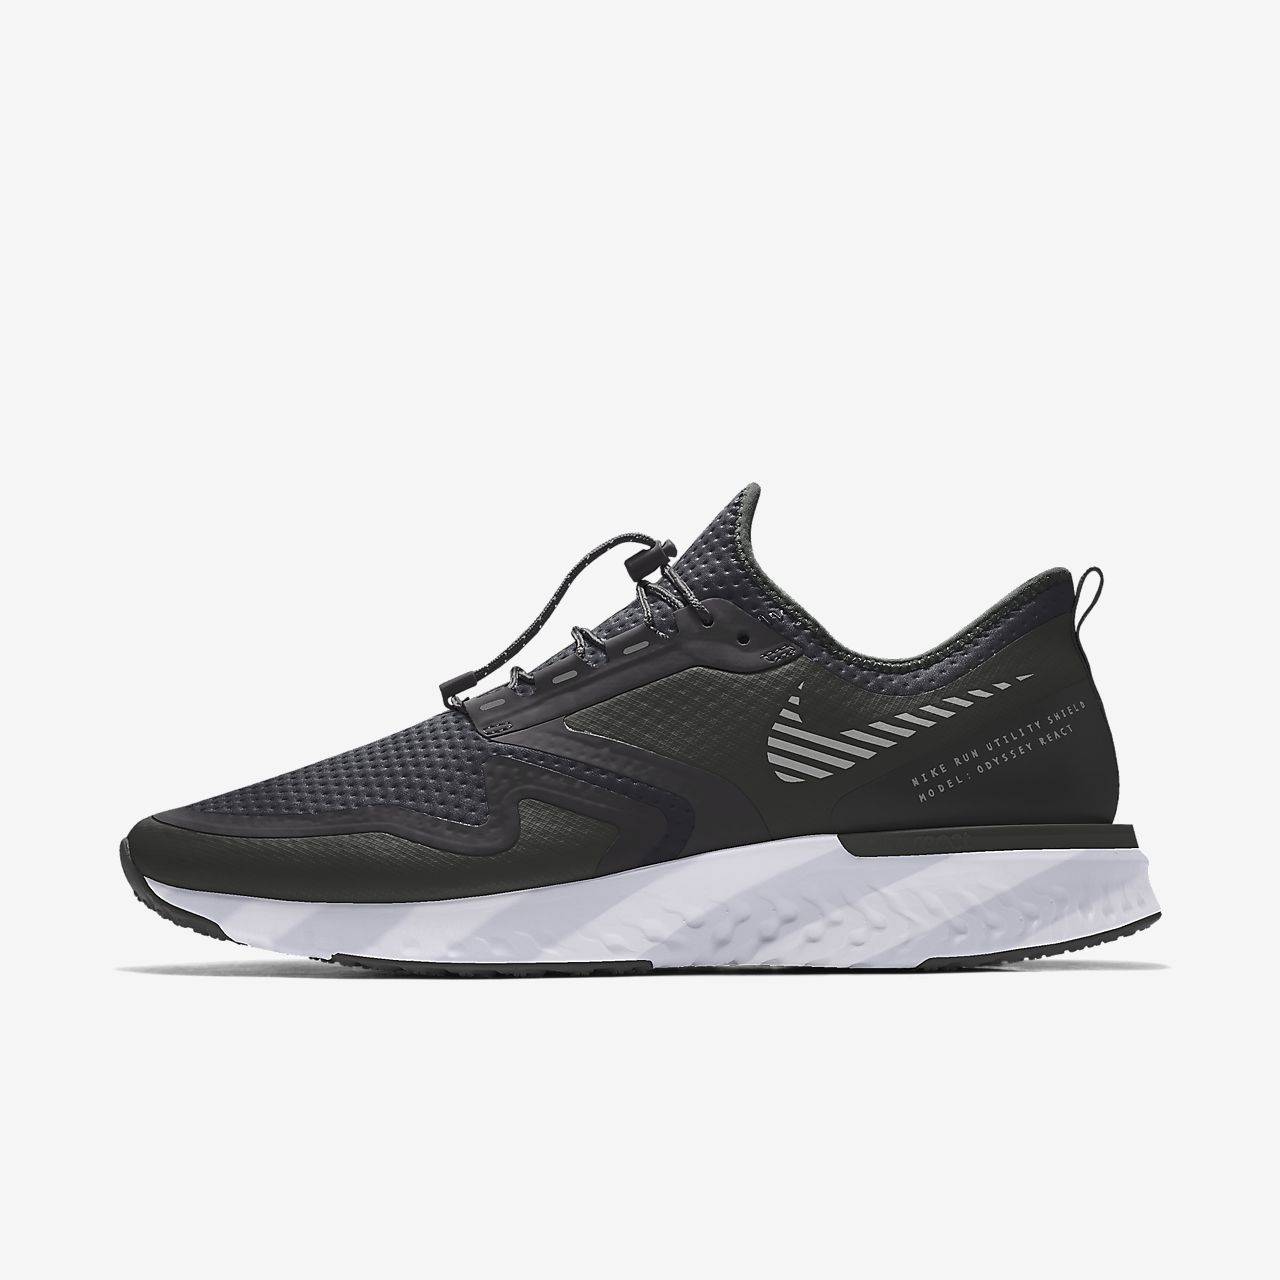 Nike Odyssey React Shield By You Custom Women's Running Shoe